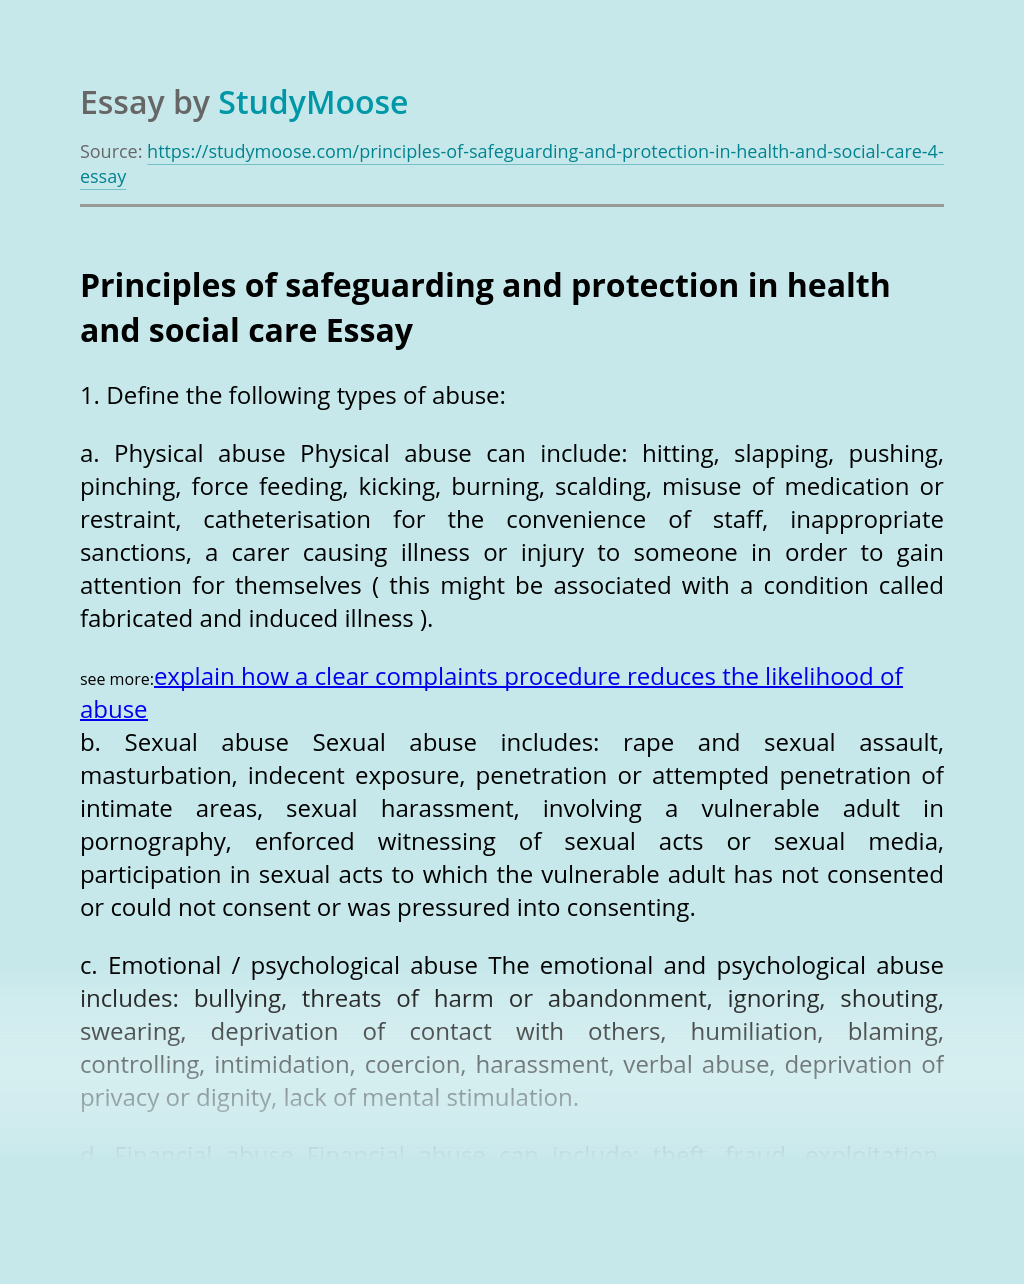 Principles of safeguarding and protection in health and social care